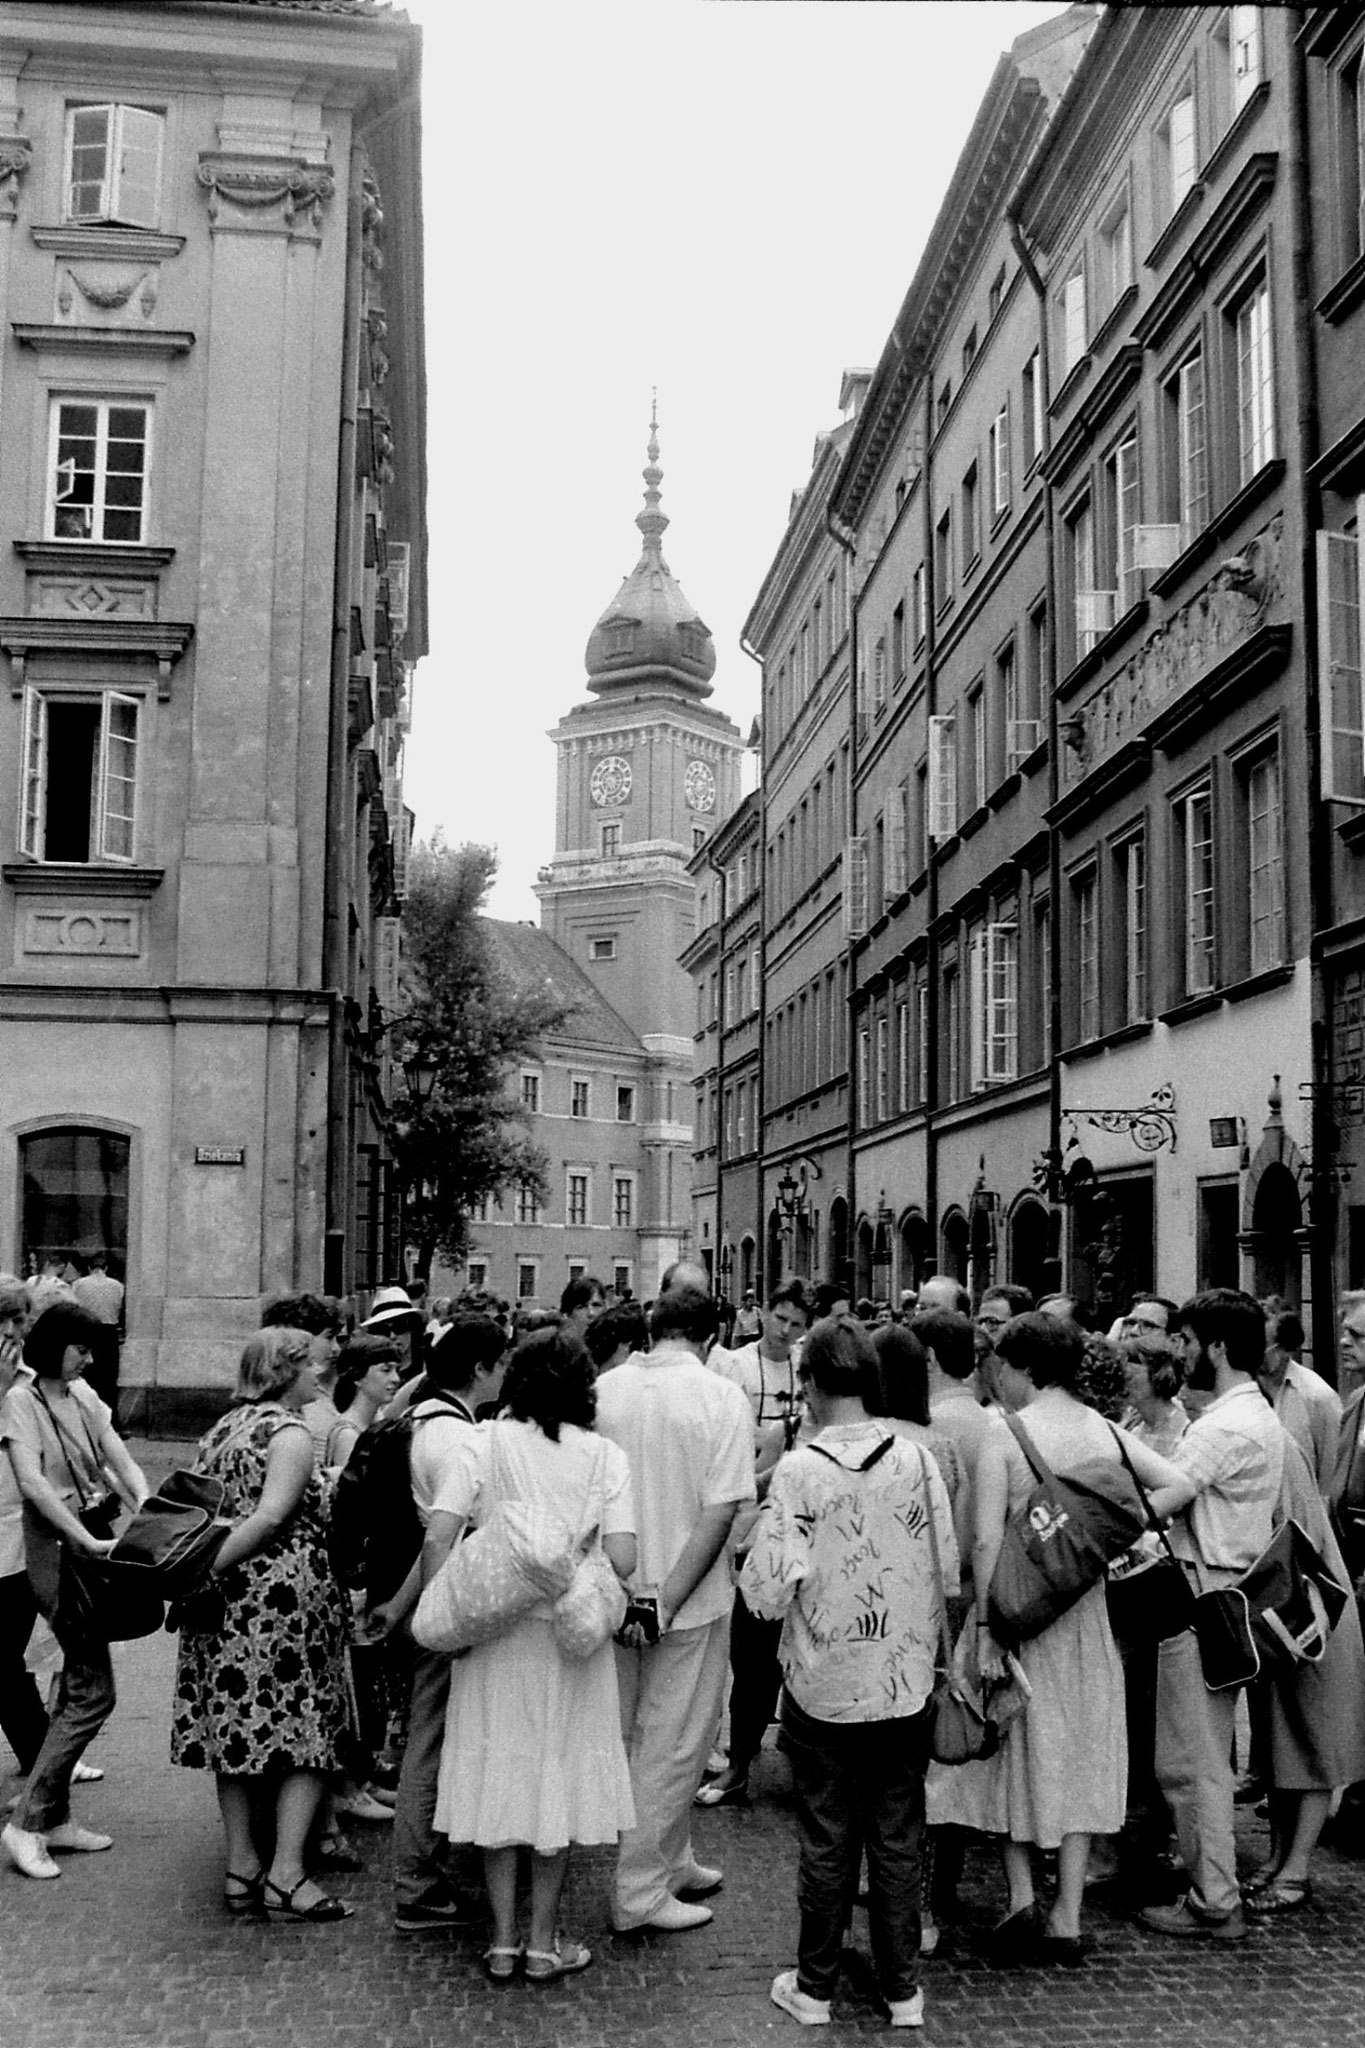 22/8/1988: 17: Warsaw Old City